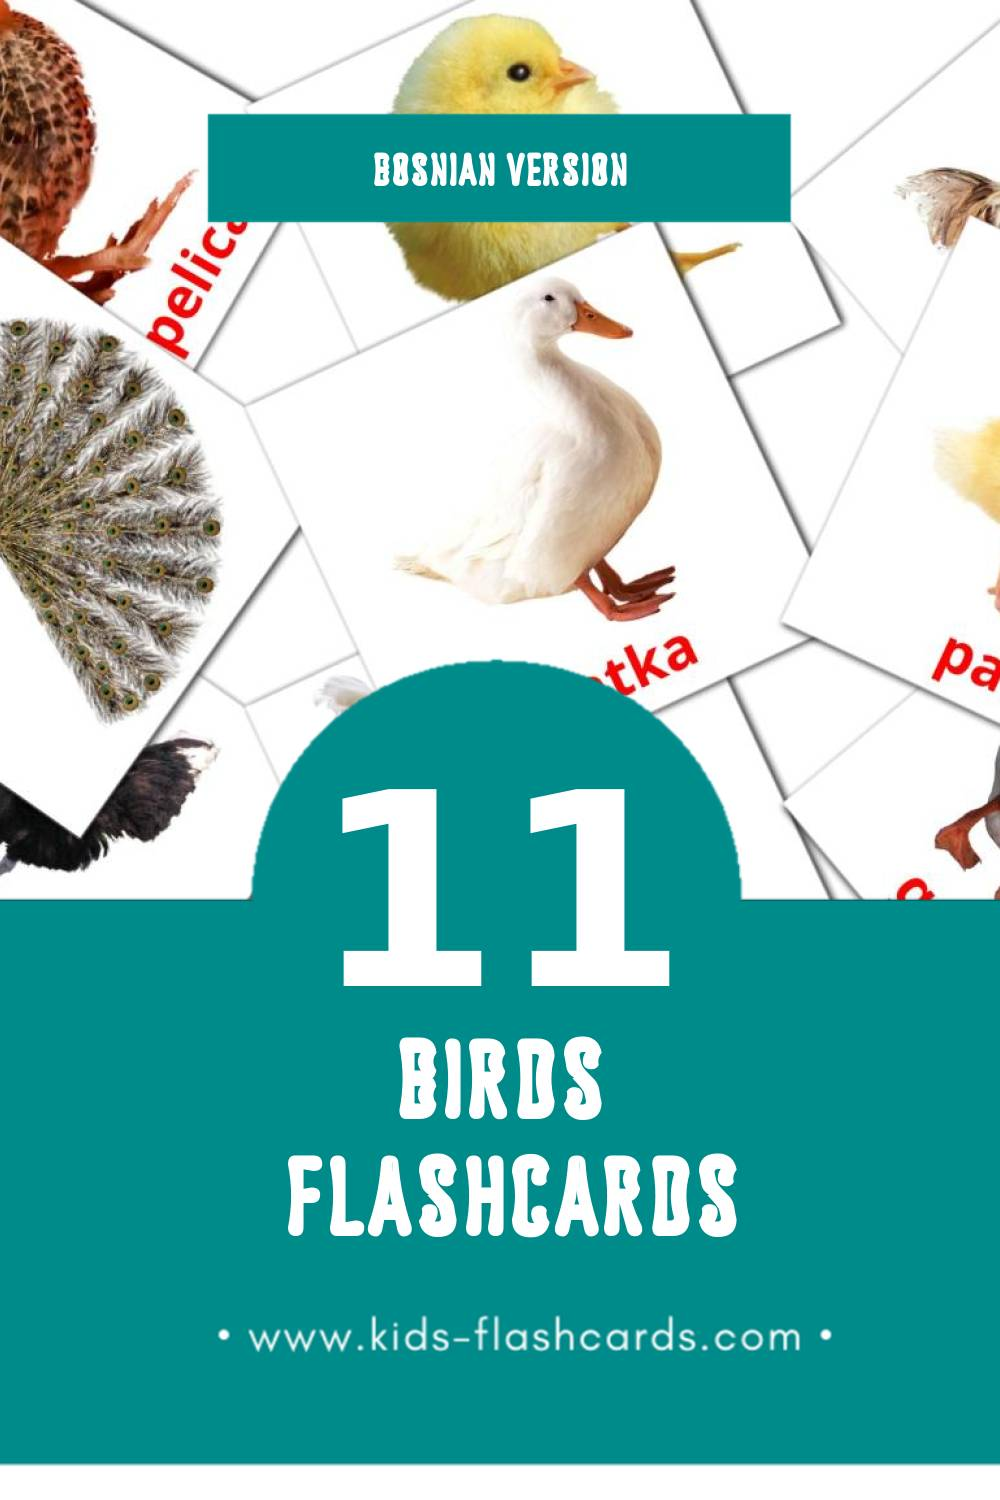 Visual Životinje Flashcards for Toddlers (11 cards in Bosnian)